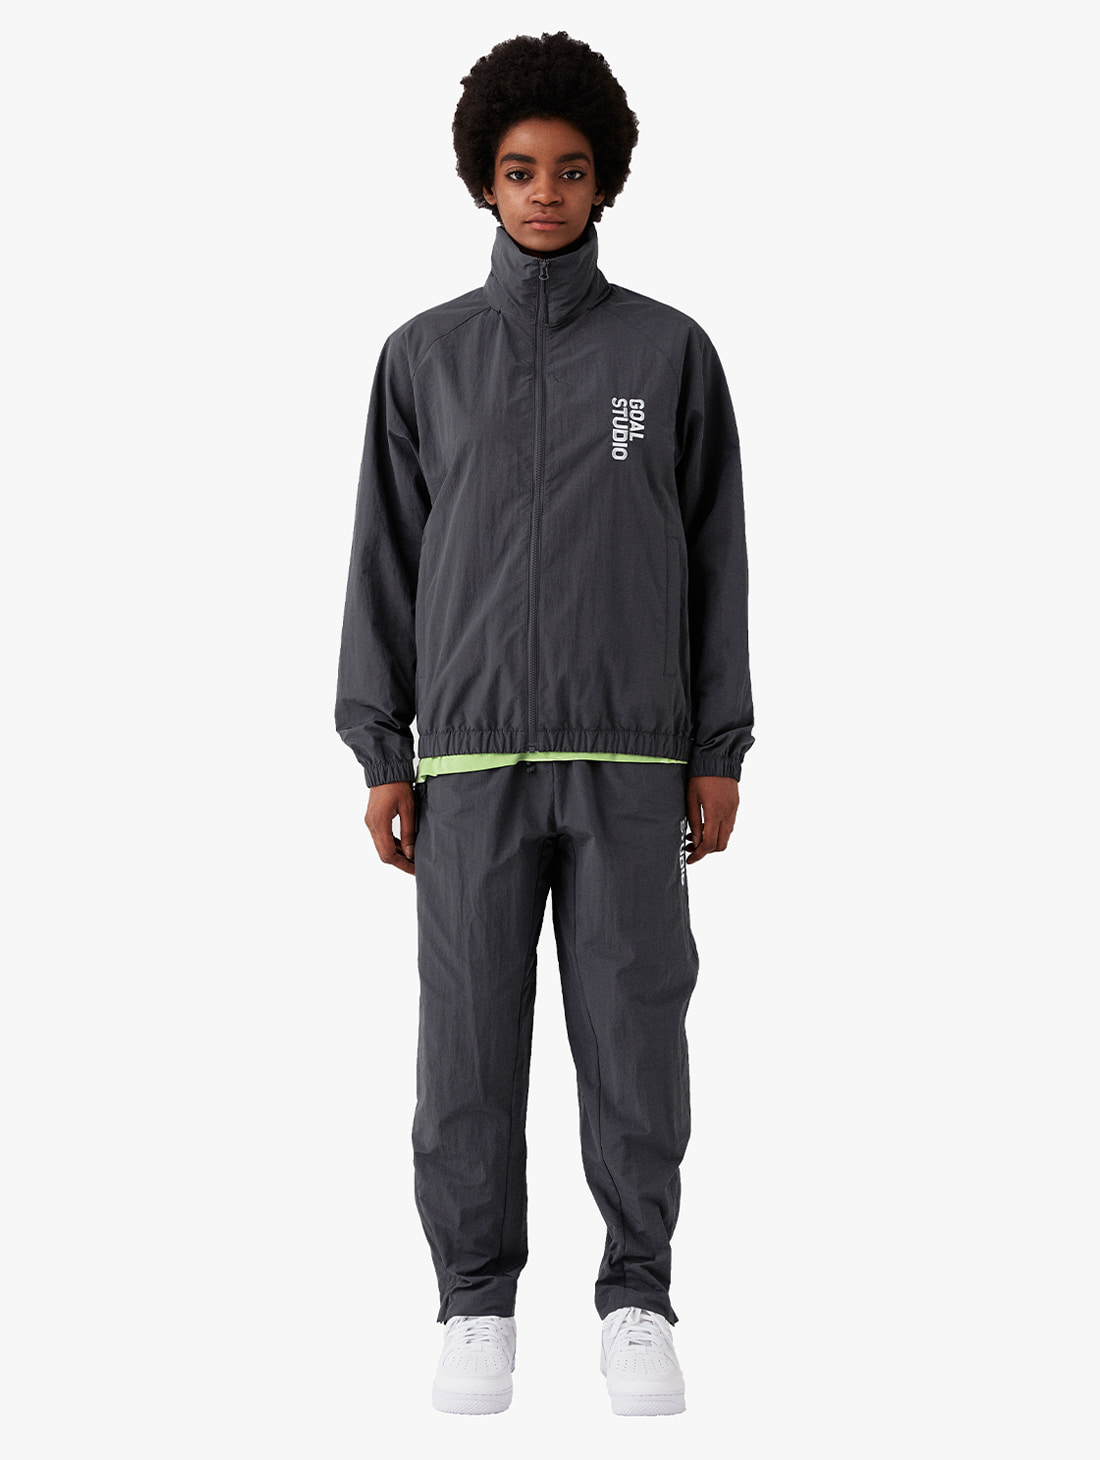 GOALSTUDIO [10% OFF] NYLON BLEND WIND BREAKER & WOVEN PANTS SET